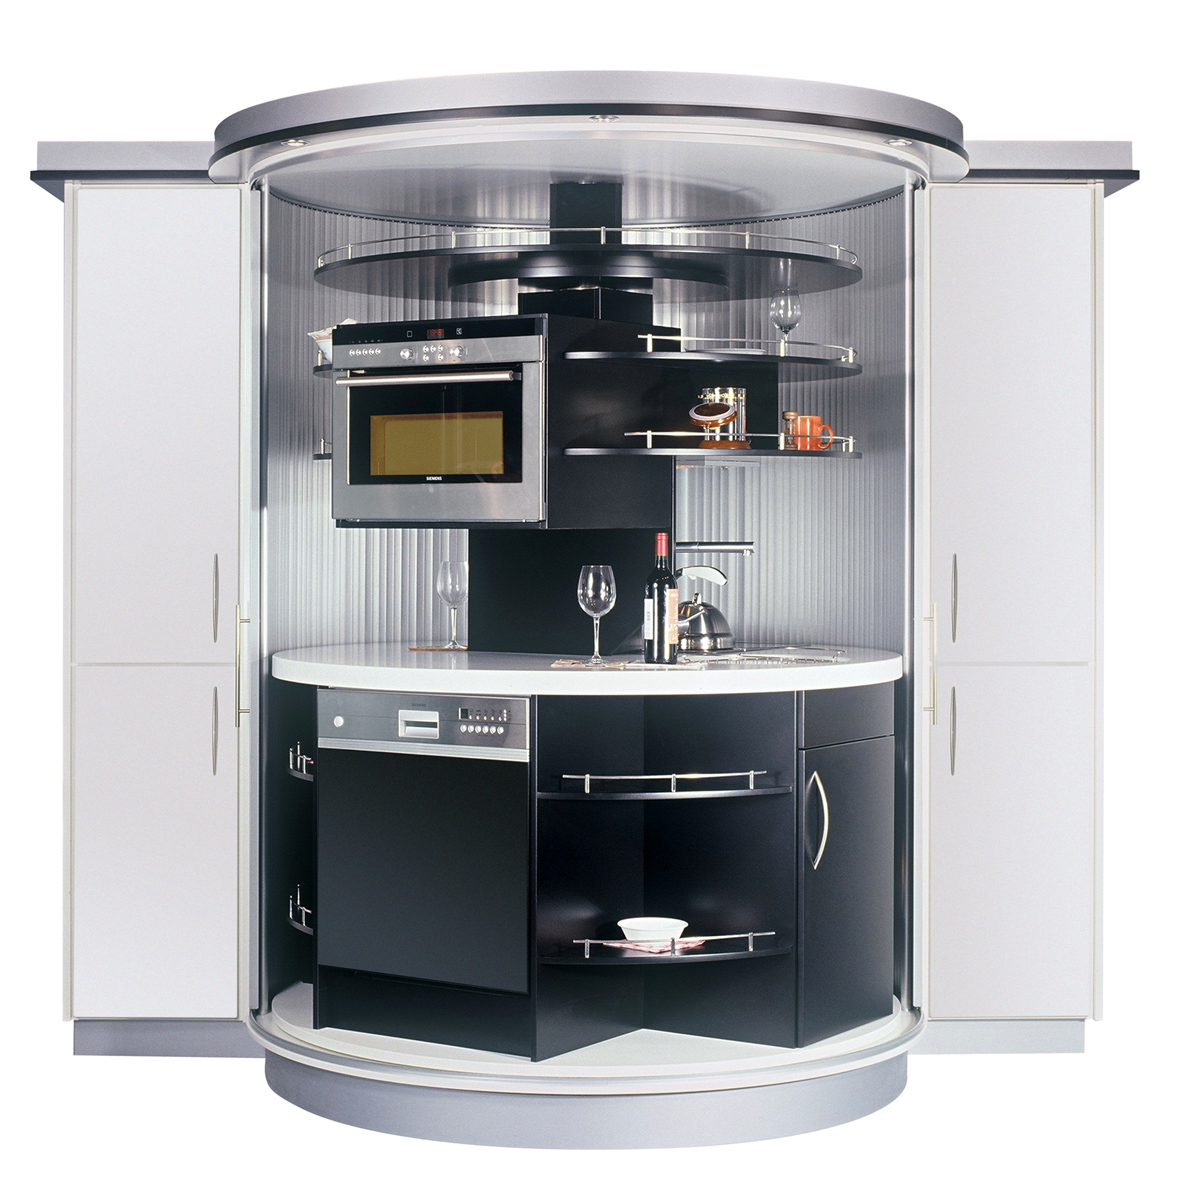 Compact Kitchens All In One: Revolving Circle Compact Kitchen